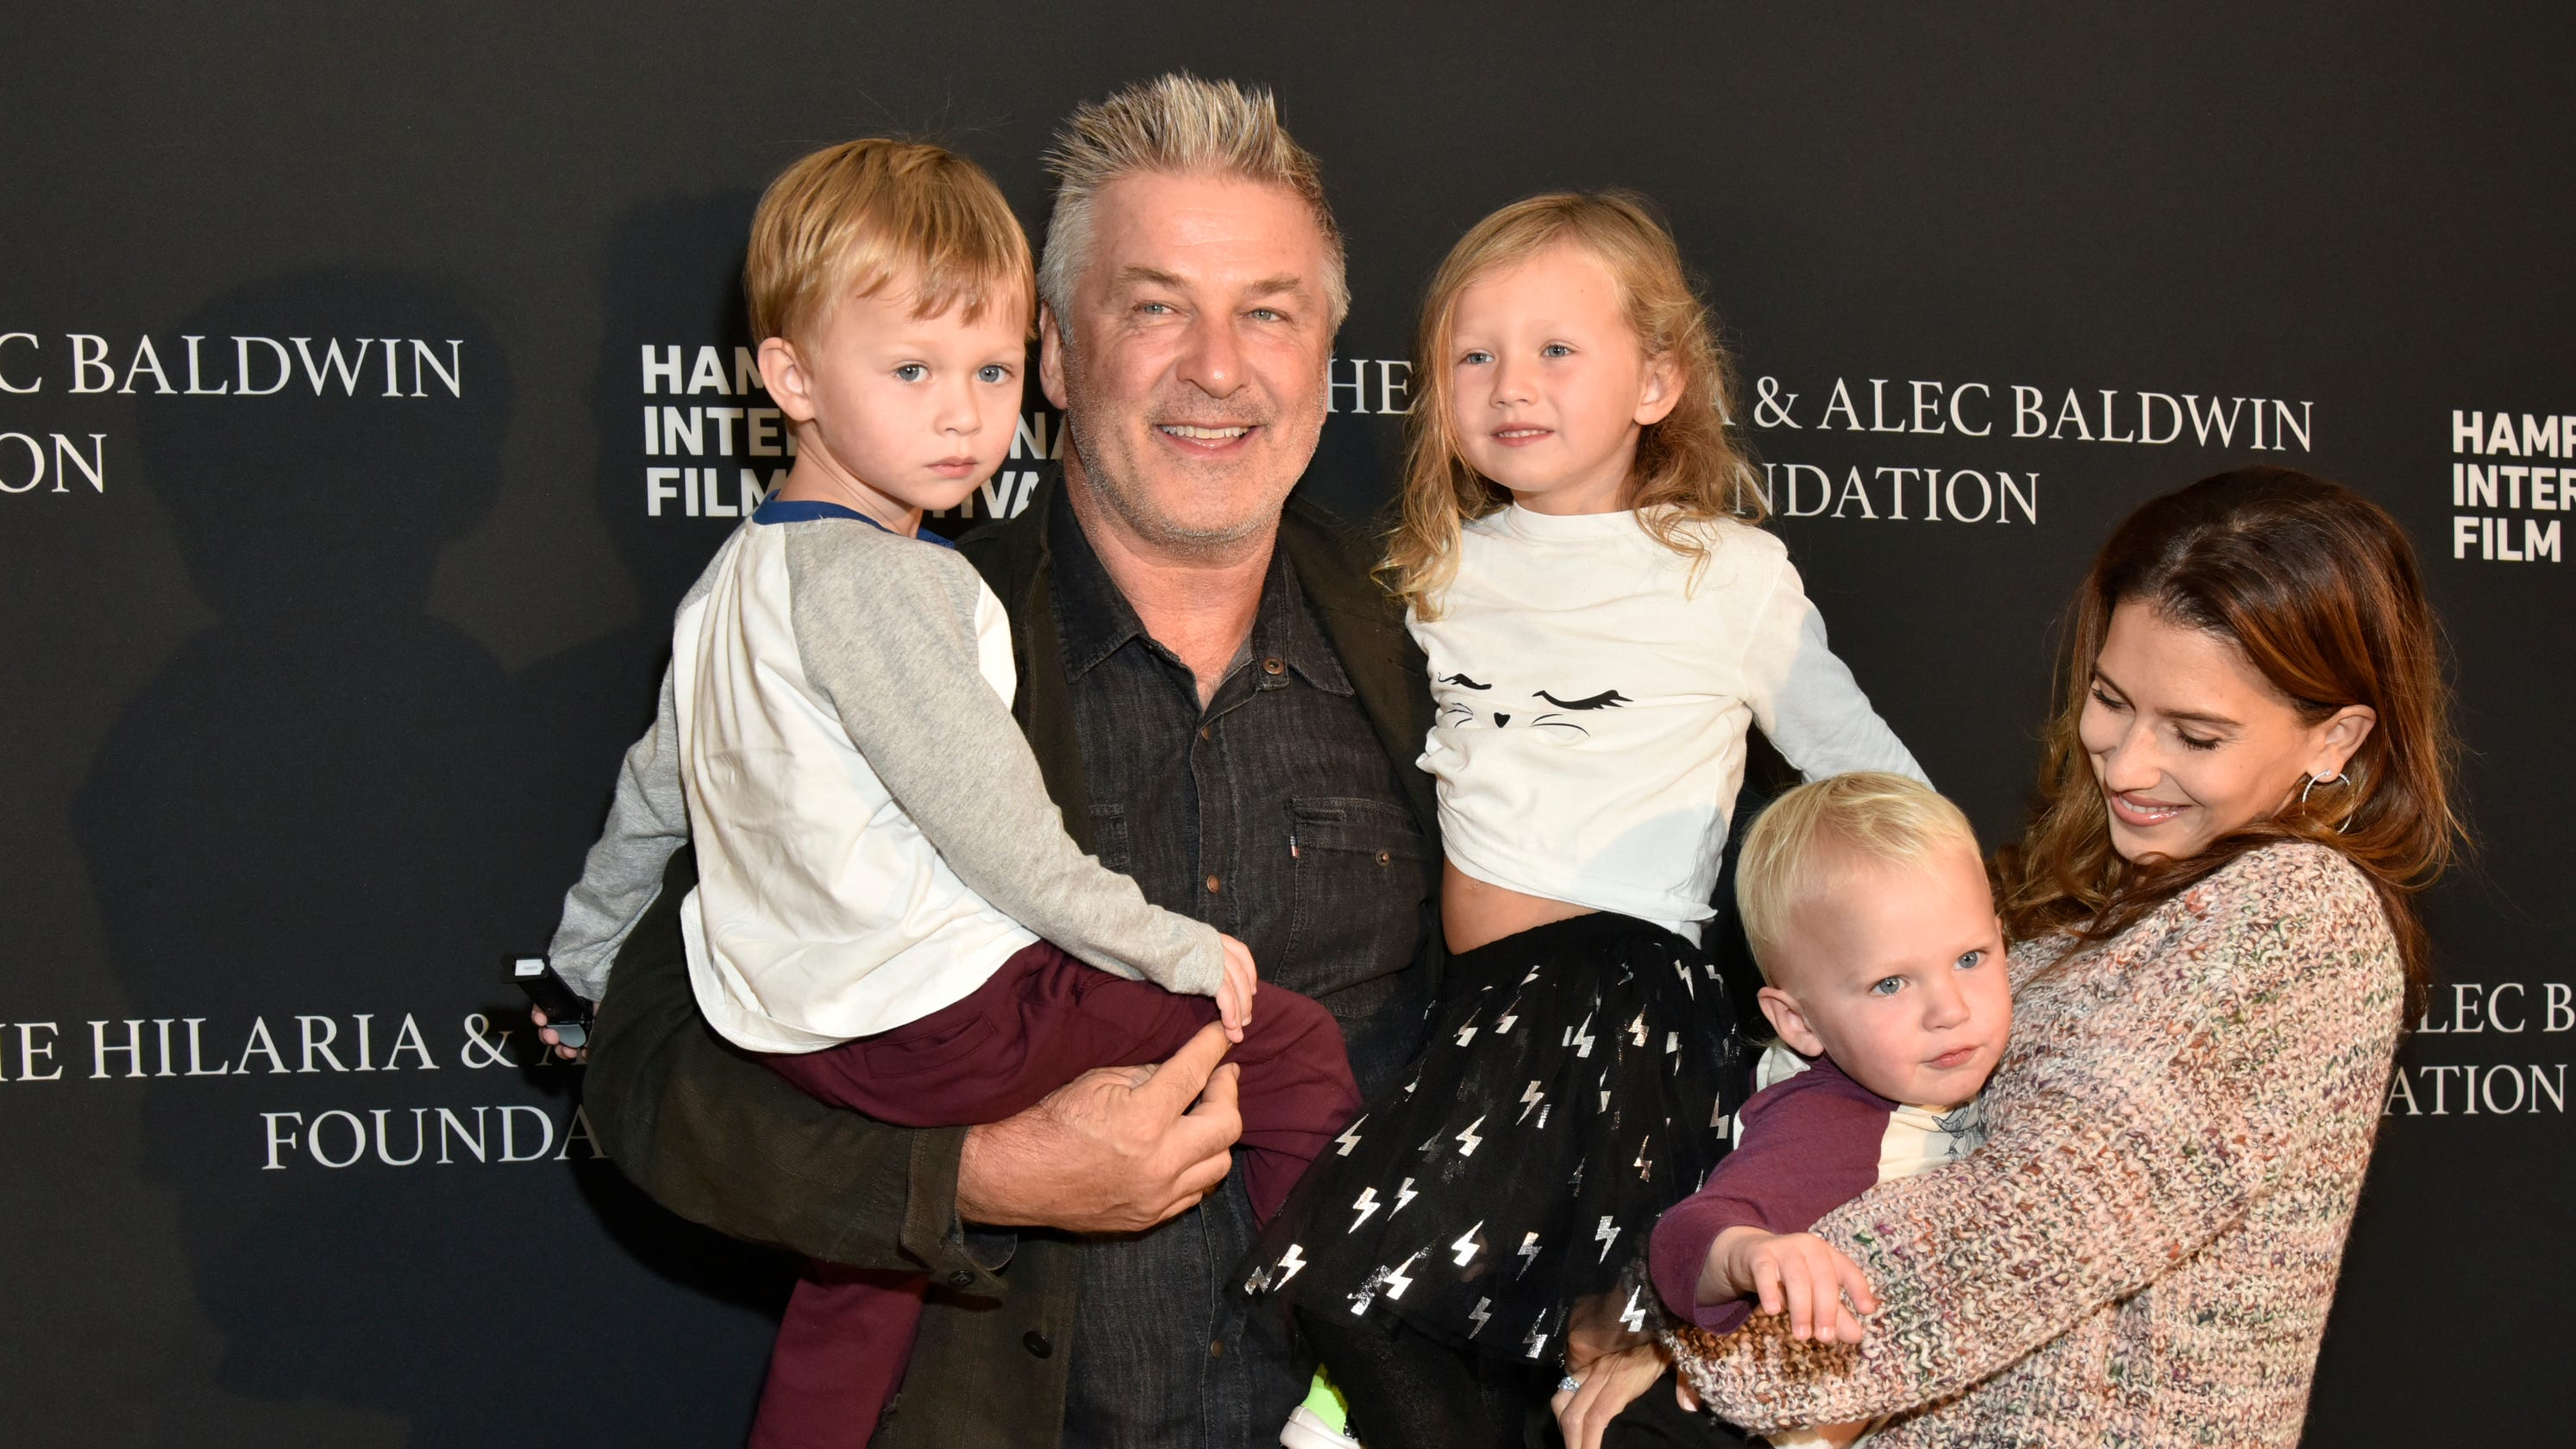 Alec Baldwin can't handle any more little ones: 'When my kids graduate school, I'll be 85'